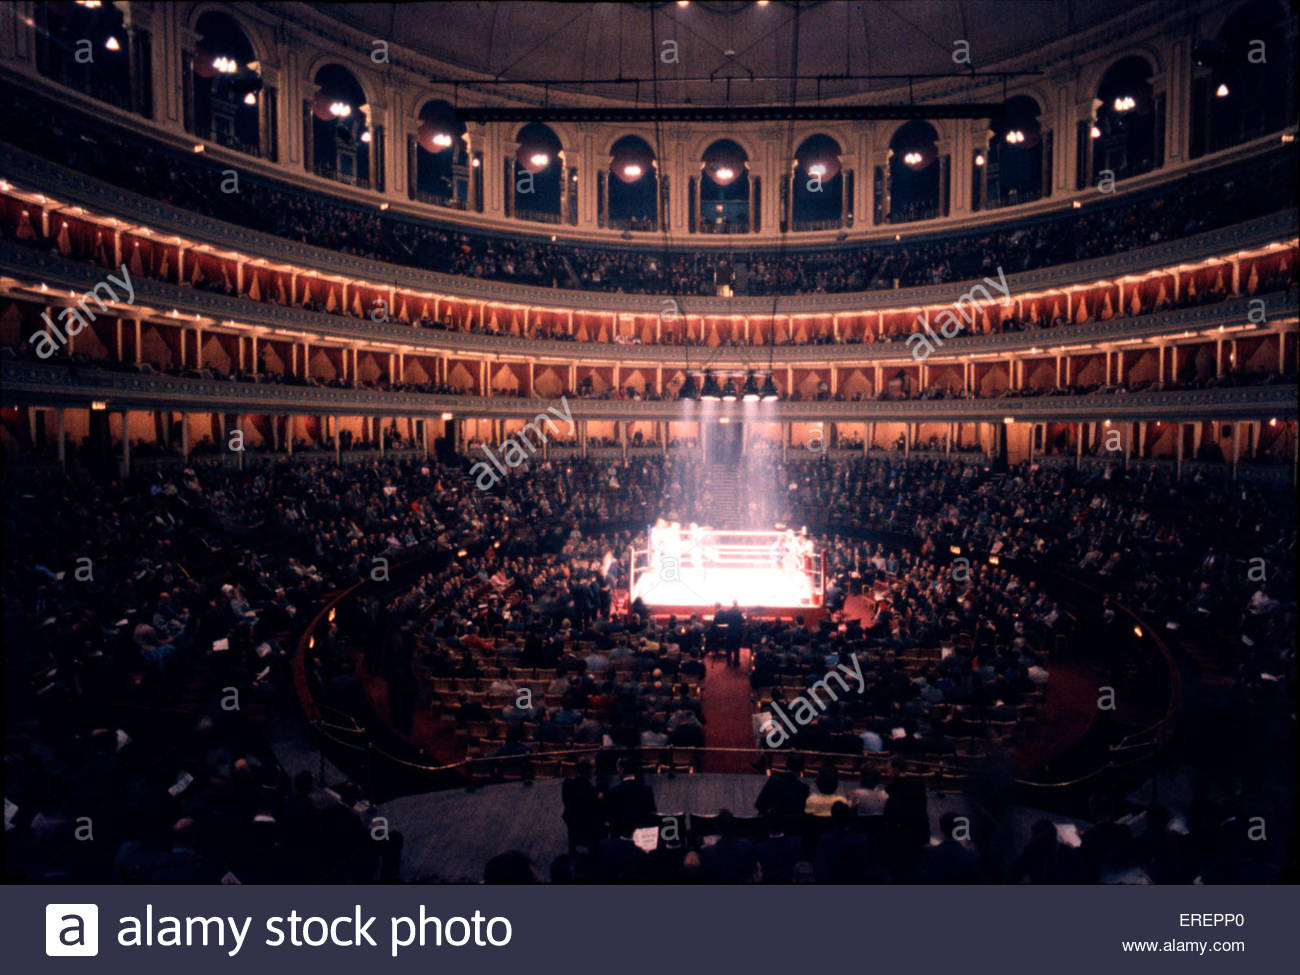 BBC Proms, Royal Albert Hall, London, UK. From stage, looking into amphitheatre. - Stock Image